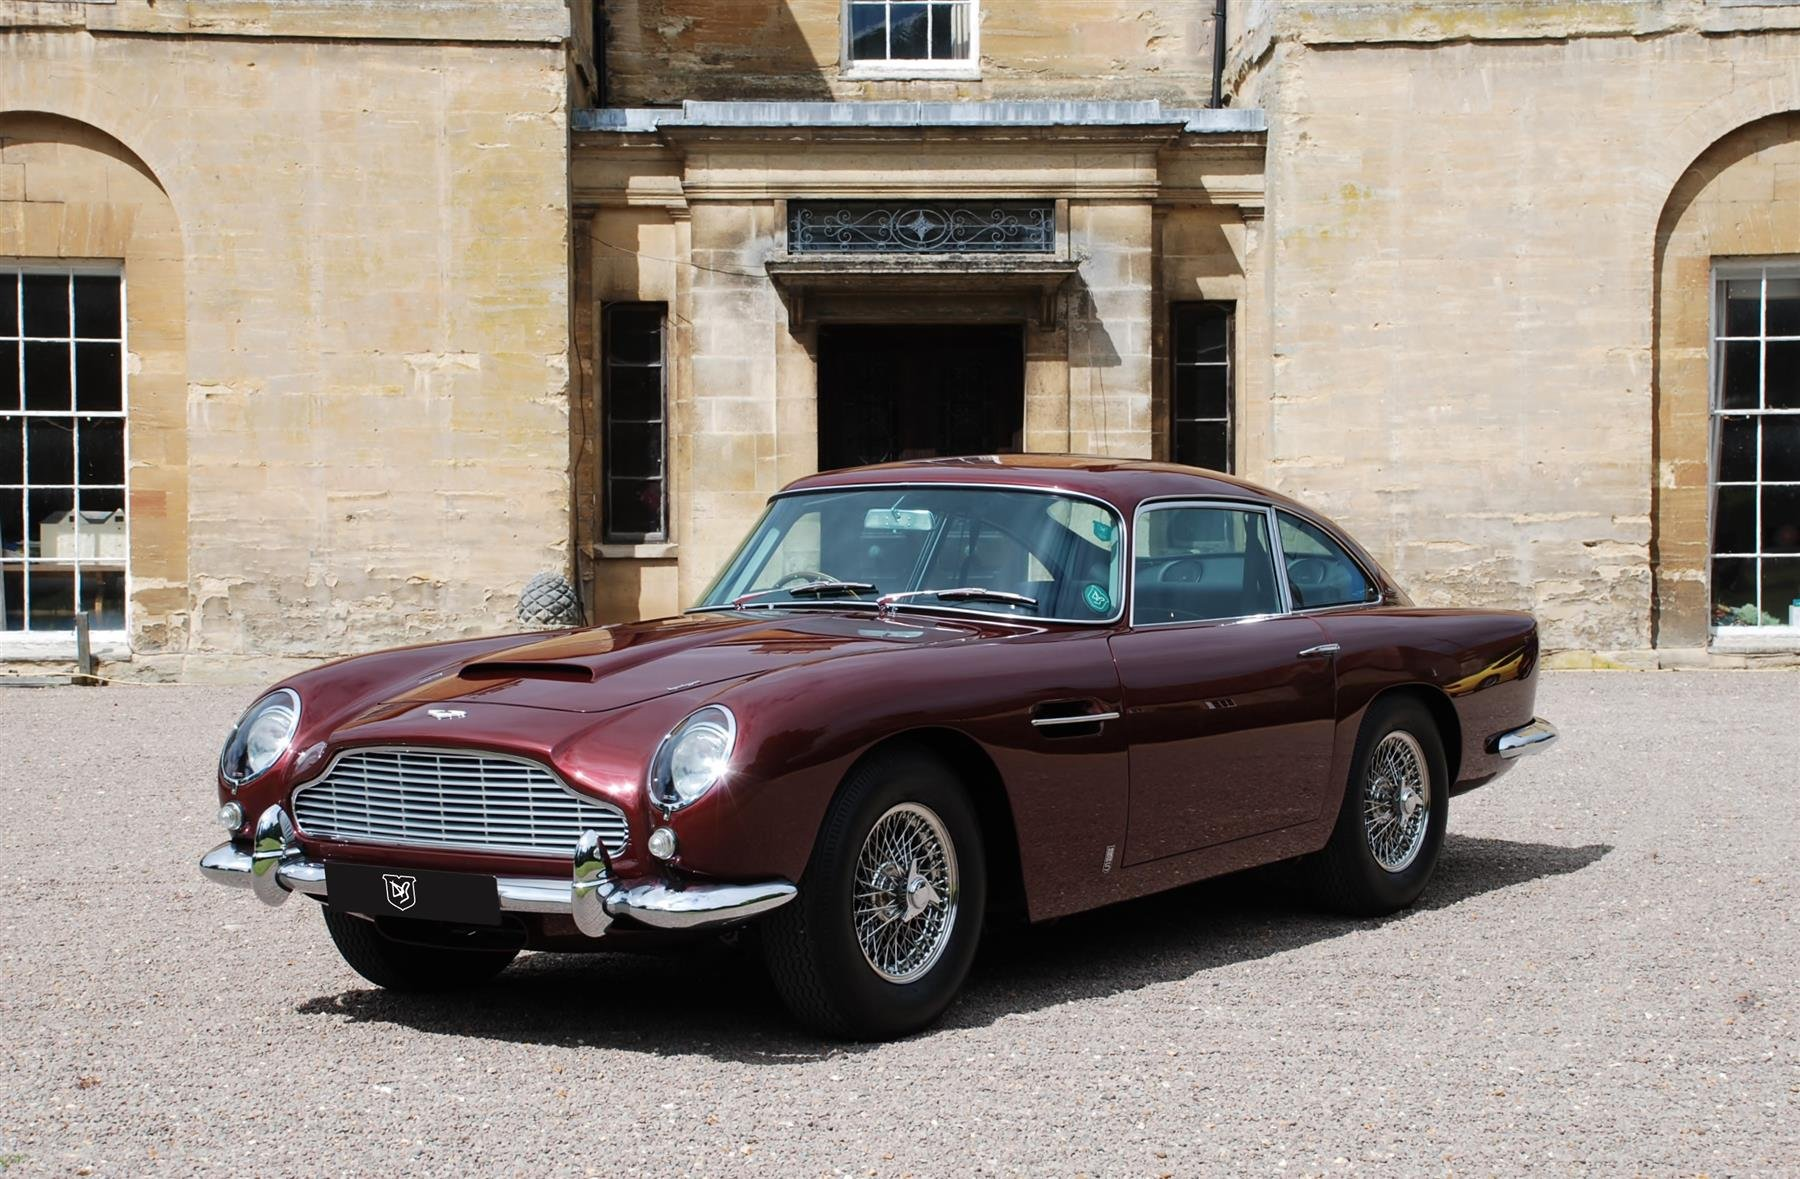 1964 aston martin db5 for sale #34066 | motorious